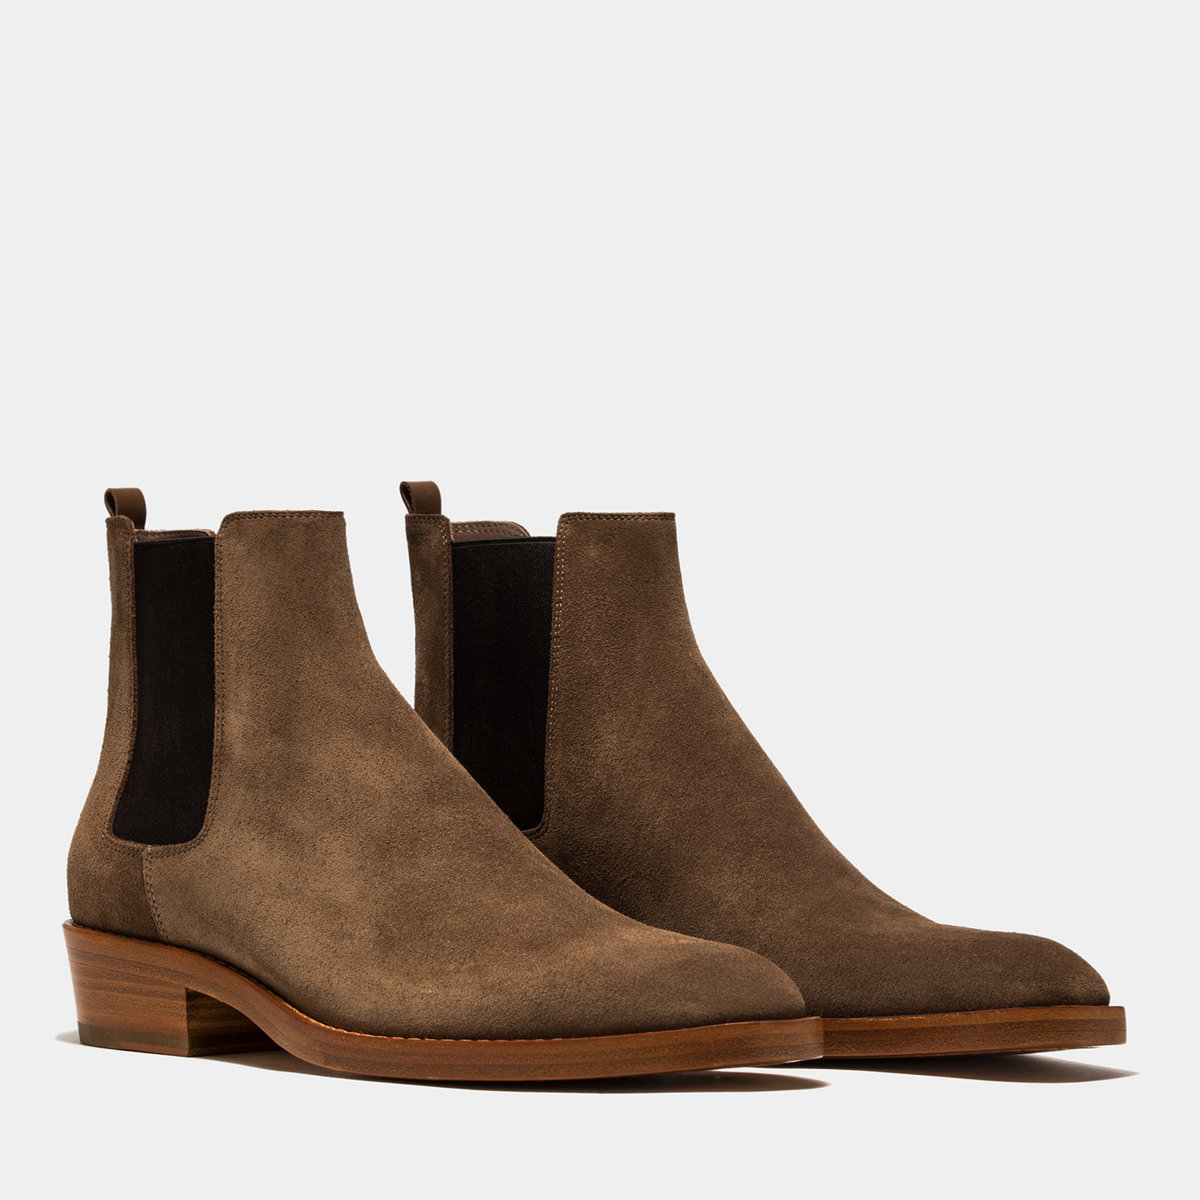 POLACCO-QUENTIN-IN-SUEDE-SIGARO-BUTTERO_34410_zoom.jpg